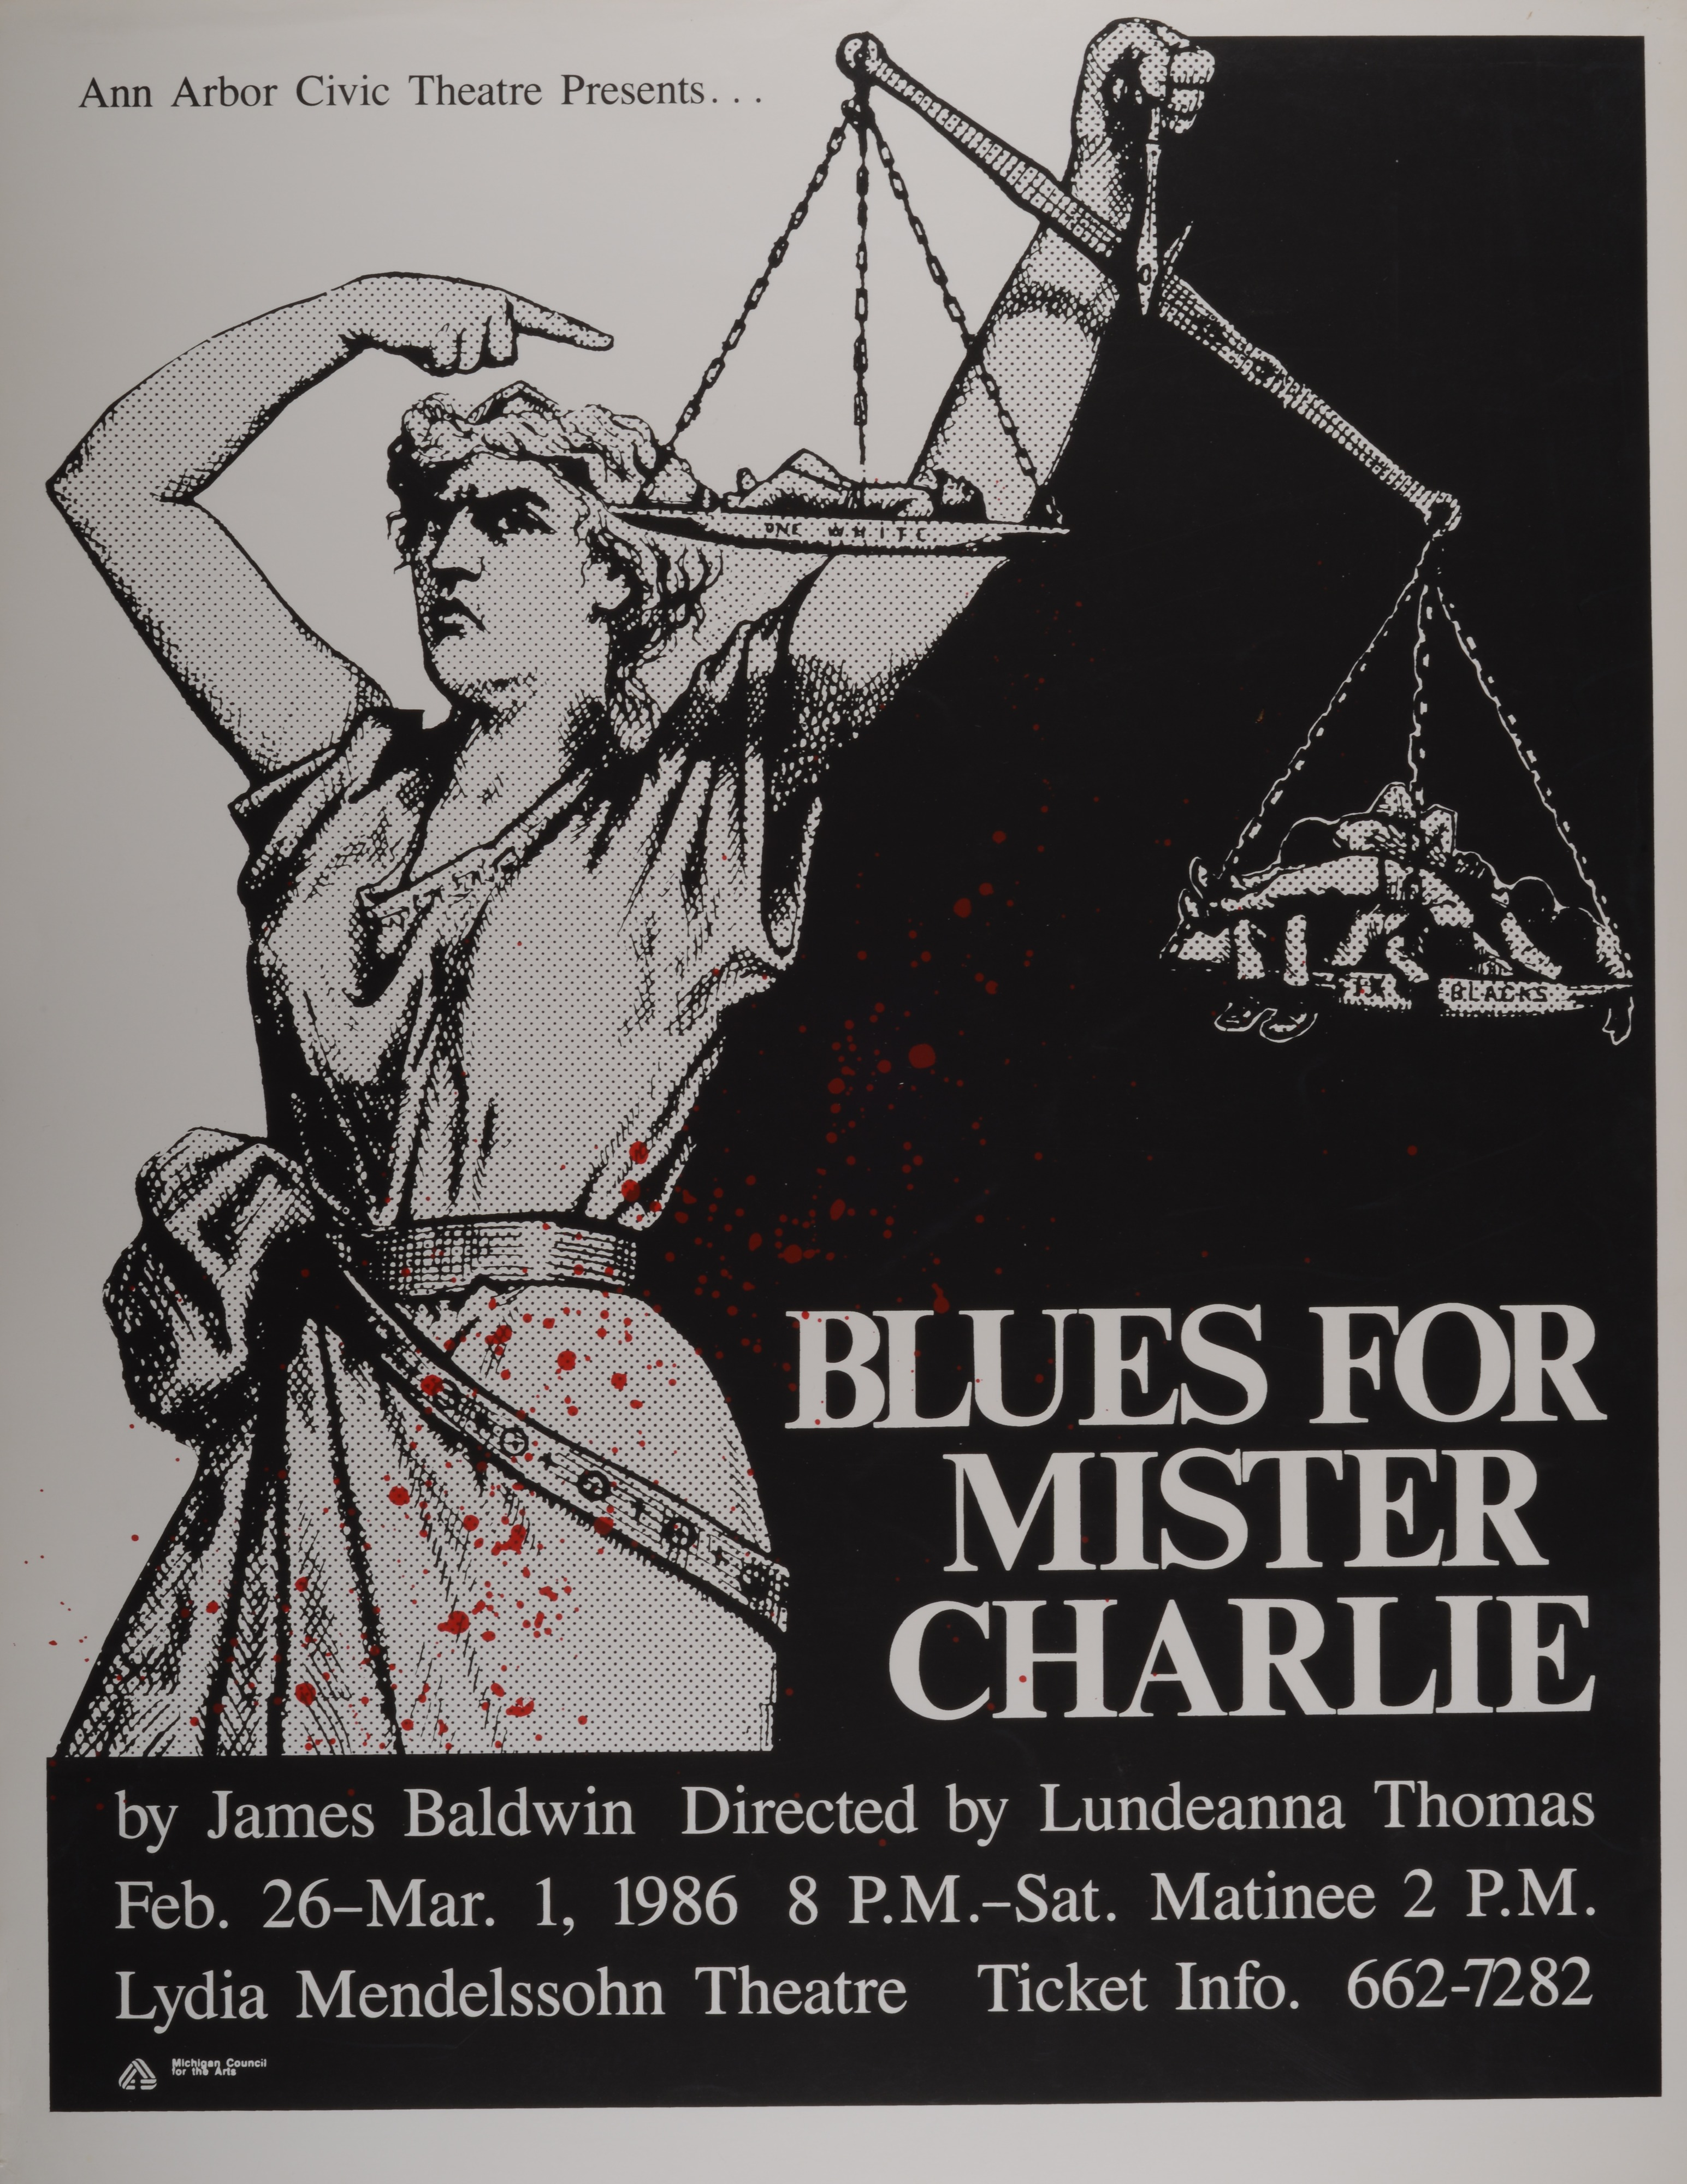 christianity sexism and racism in blues for mister charlie a play by james baldwin